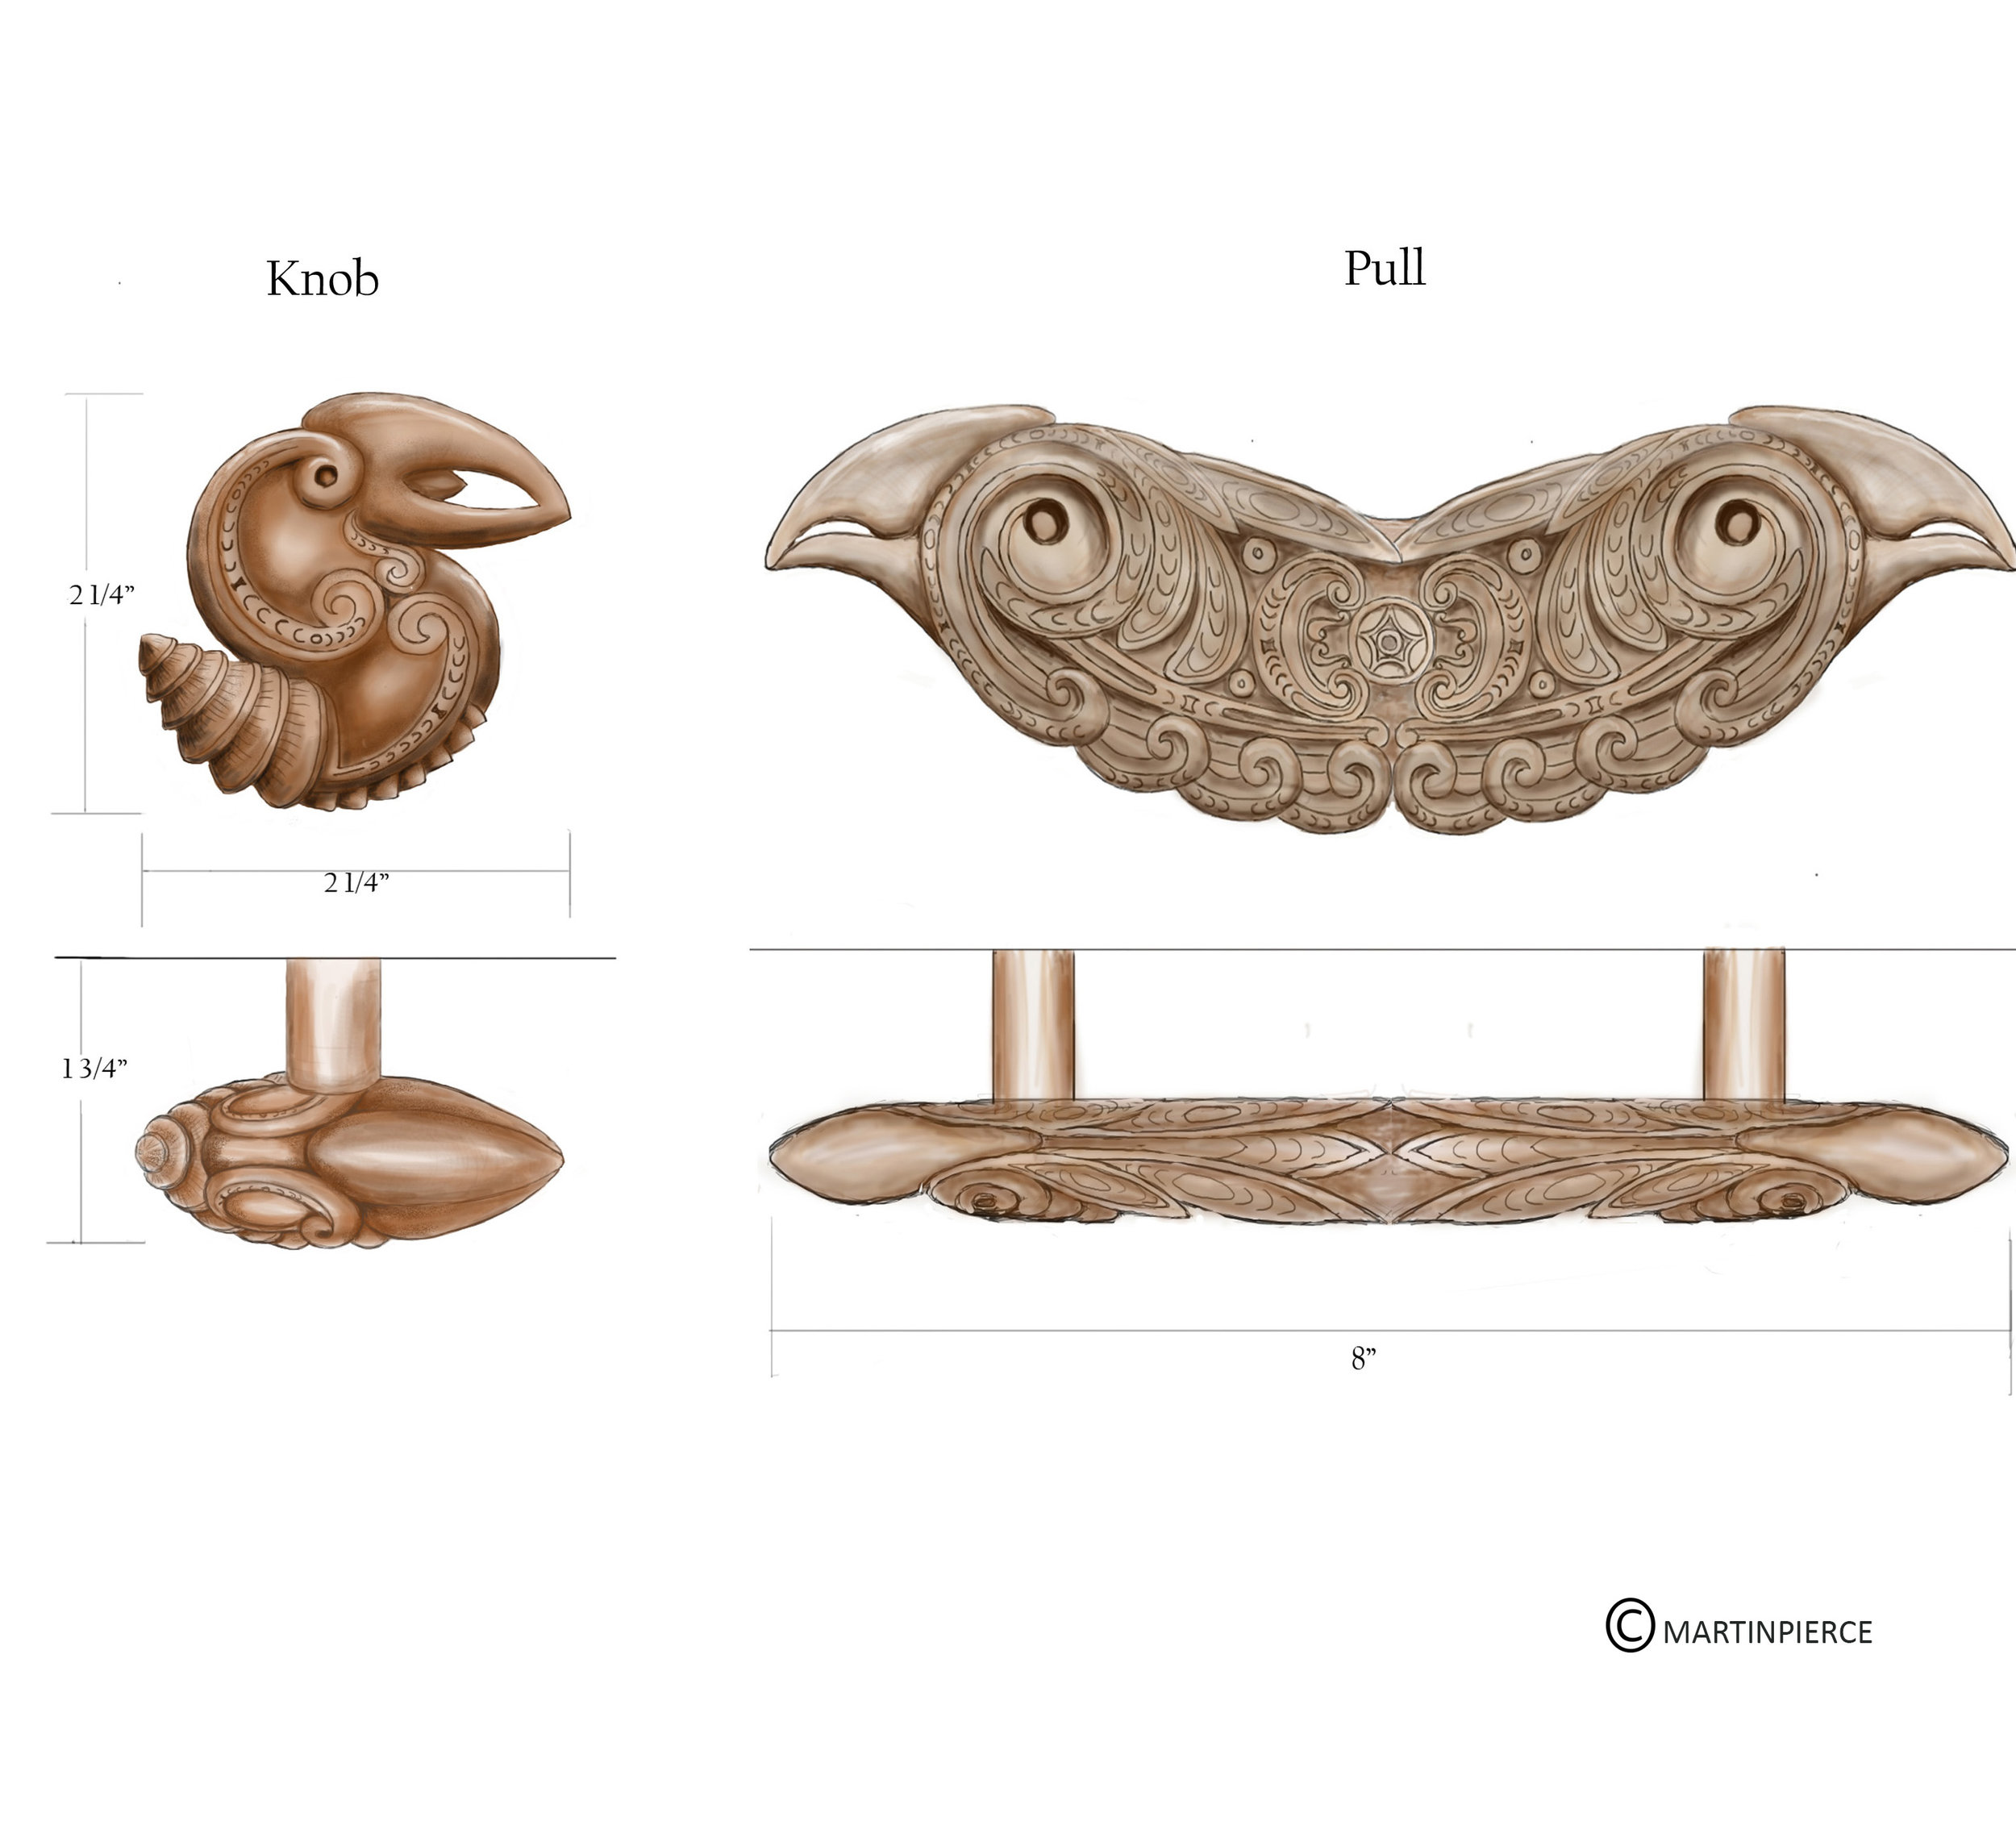 Hawaiian bird knob designs.jpeg